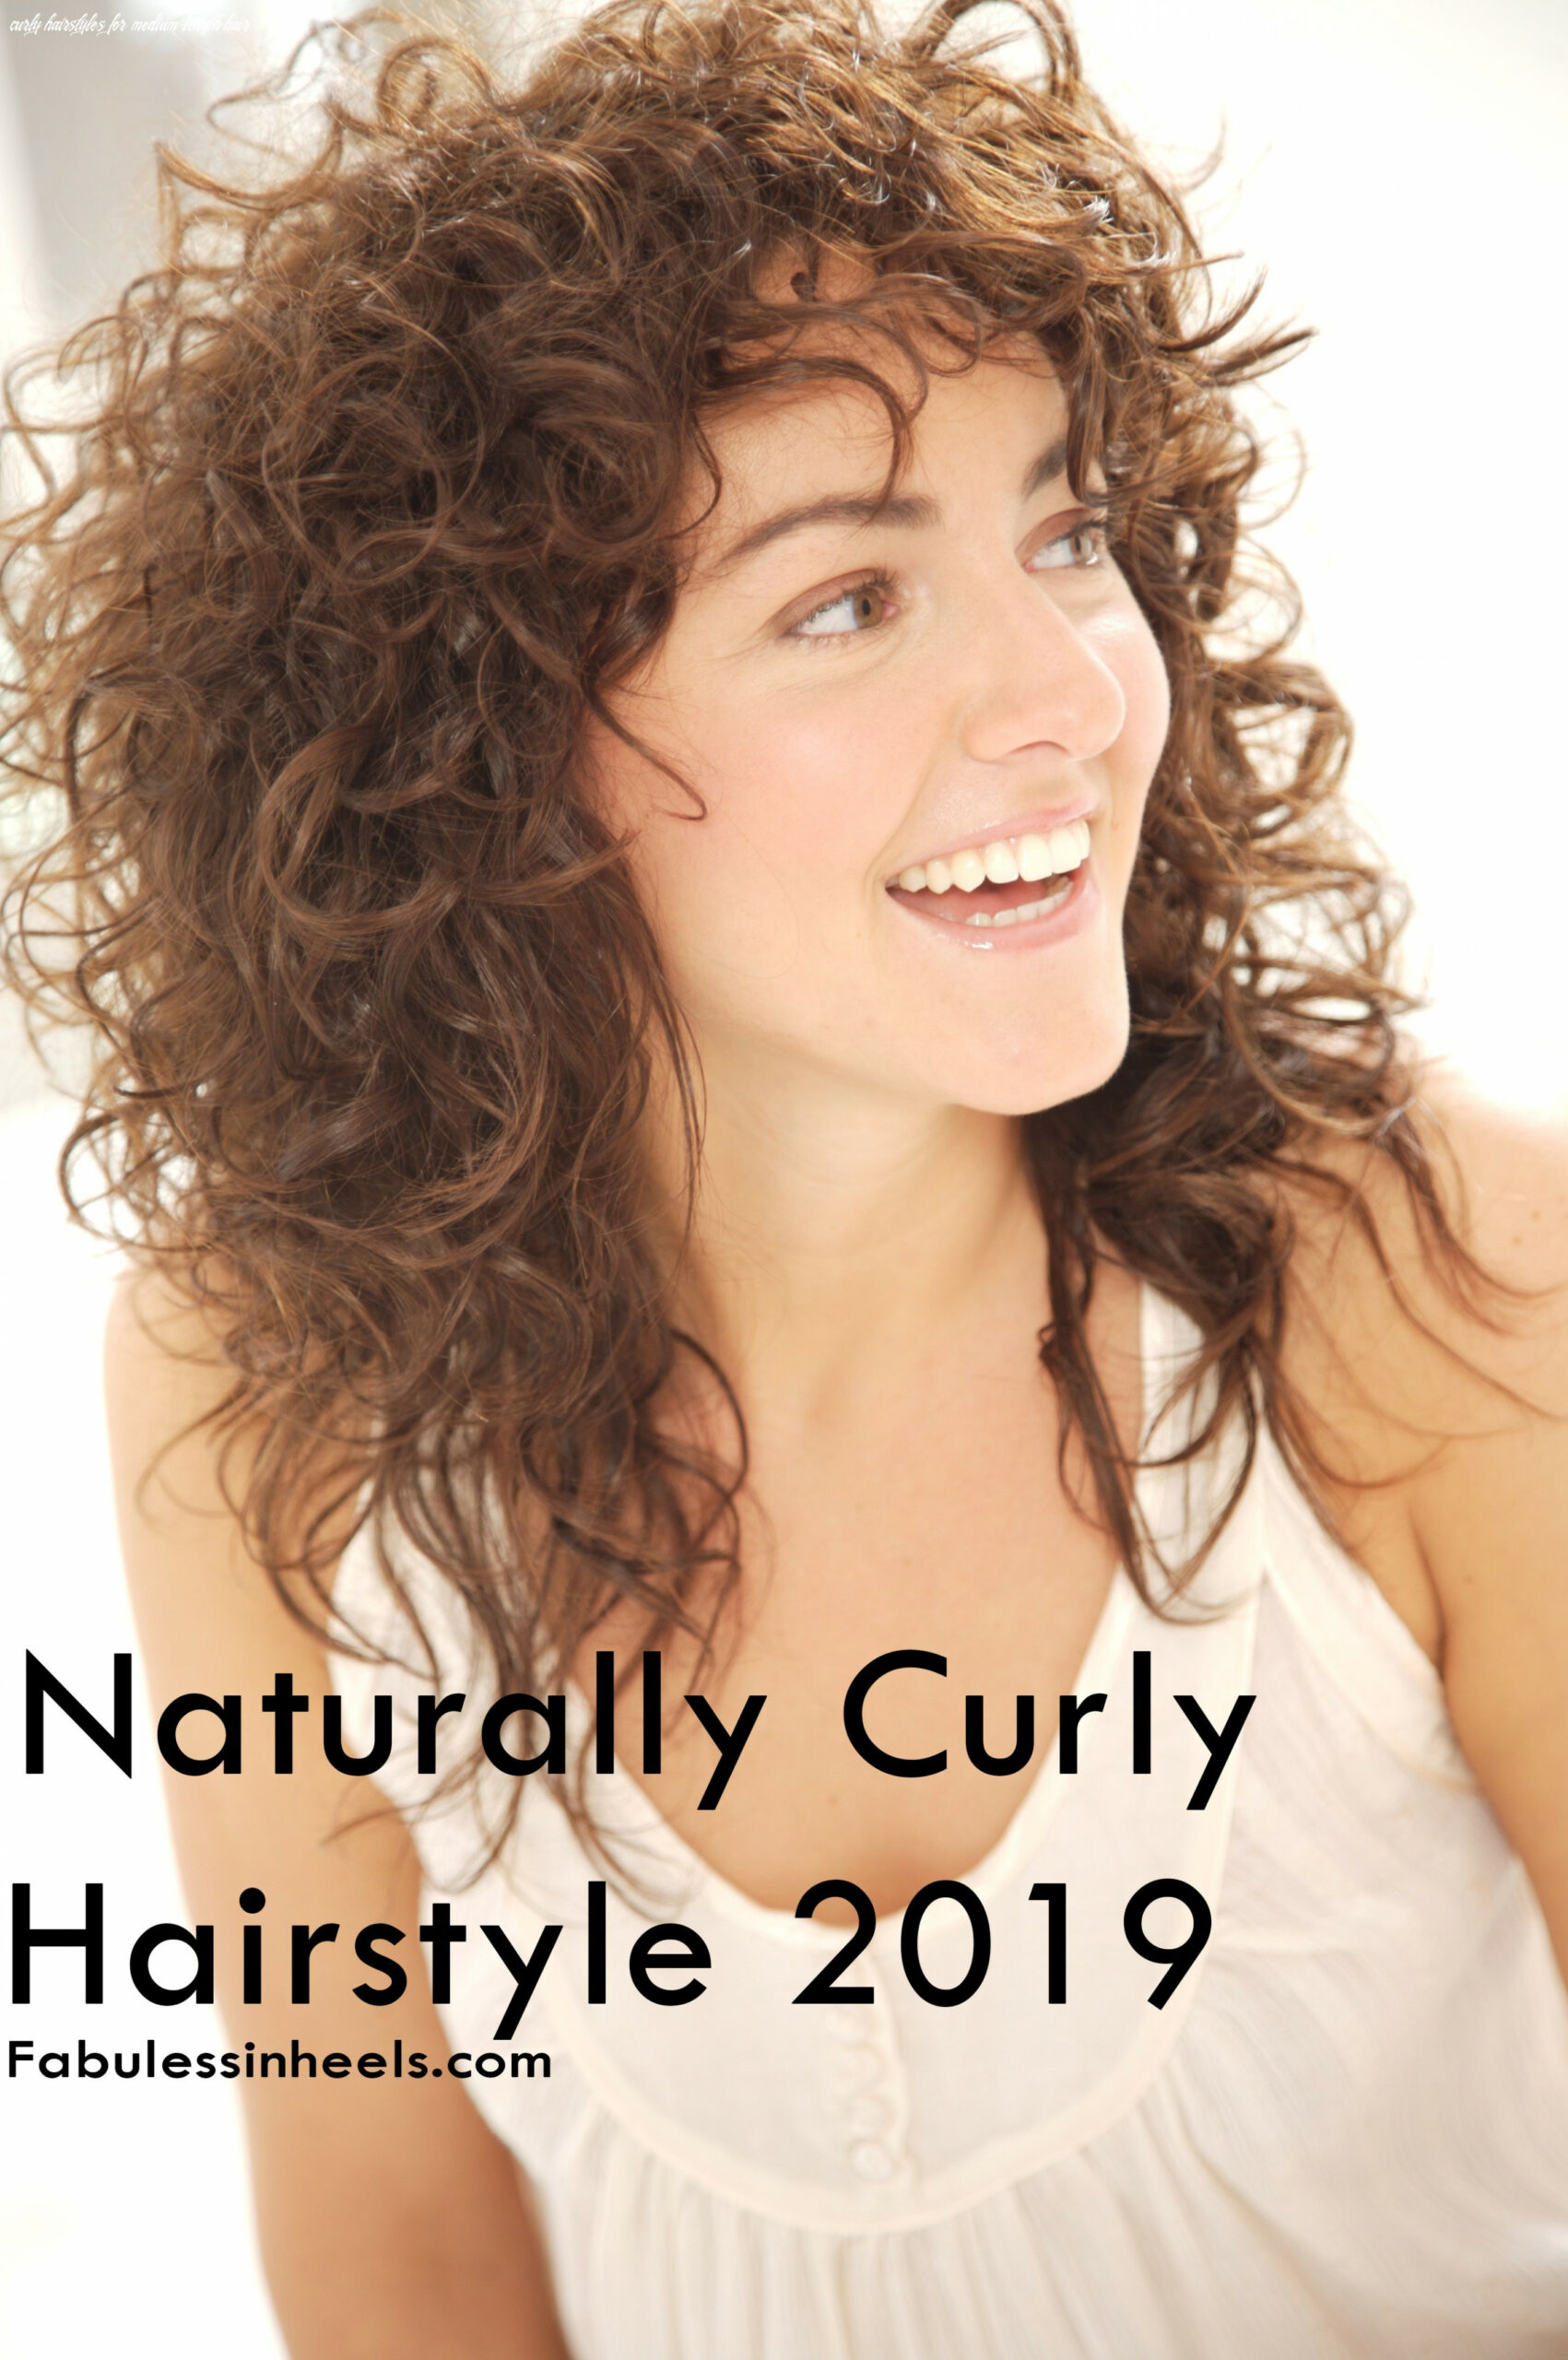 Naturally curly hair 12 for womens with medium length #hairstyle